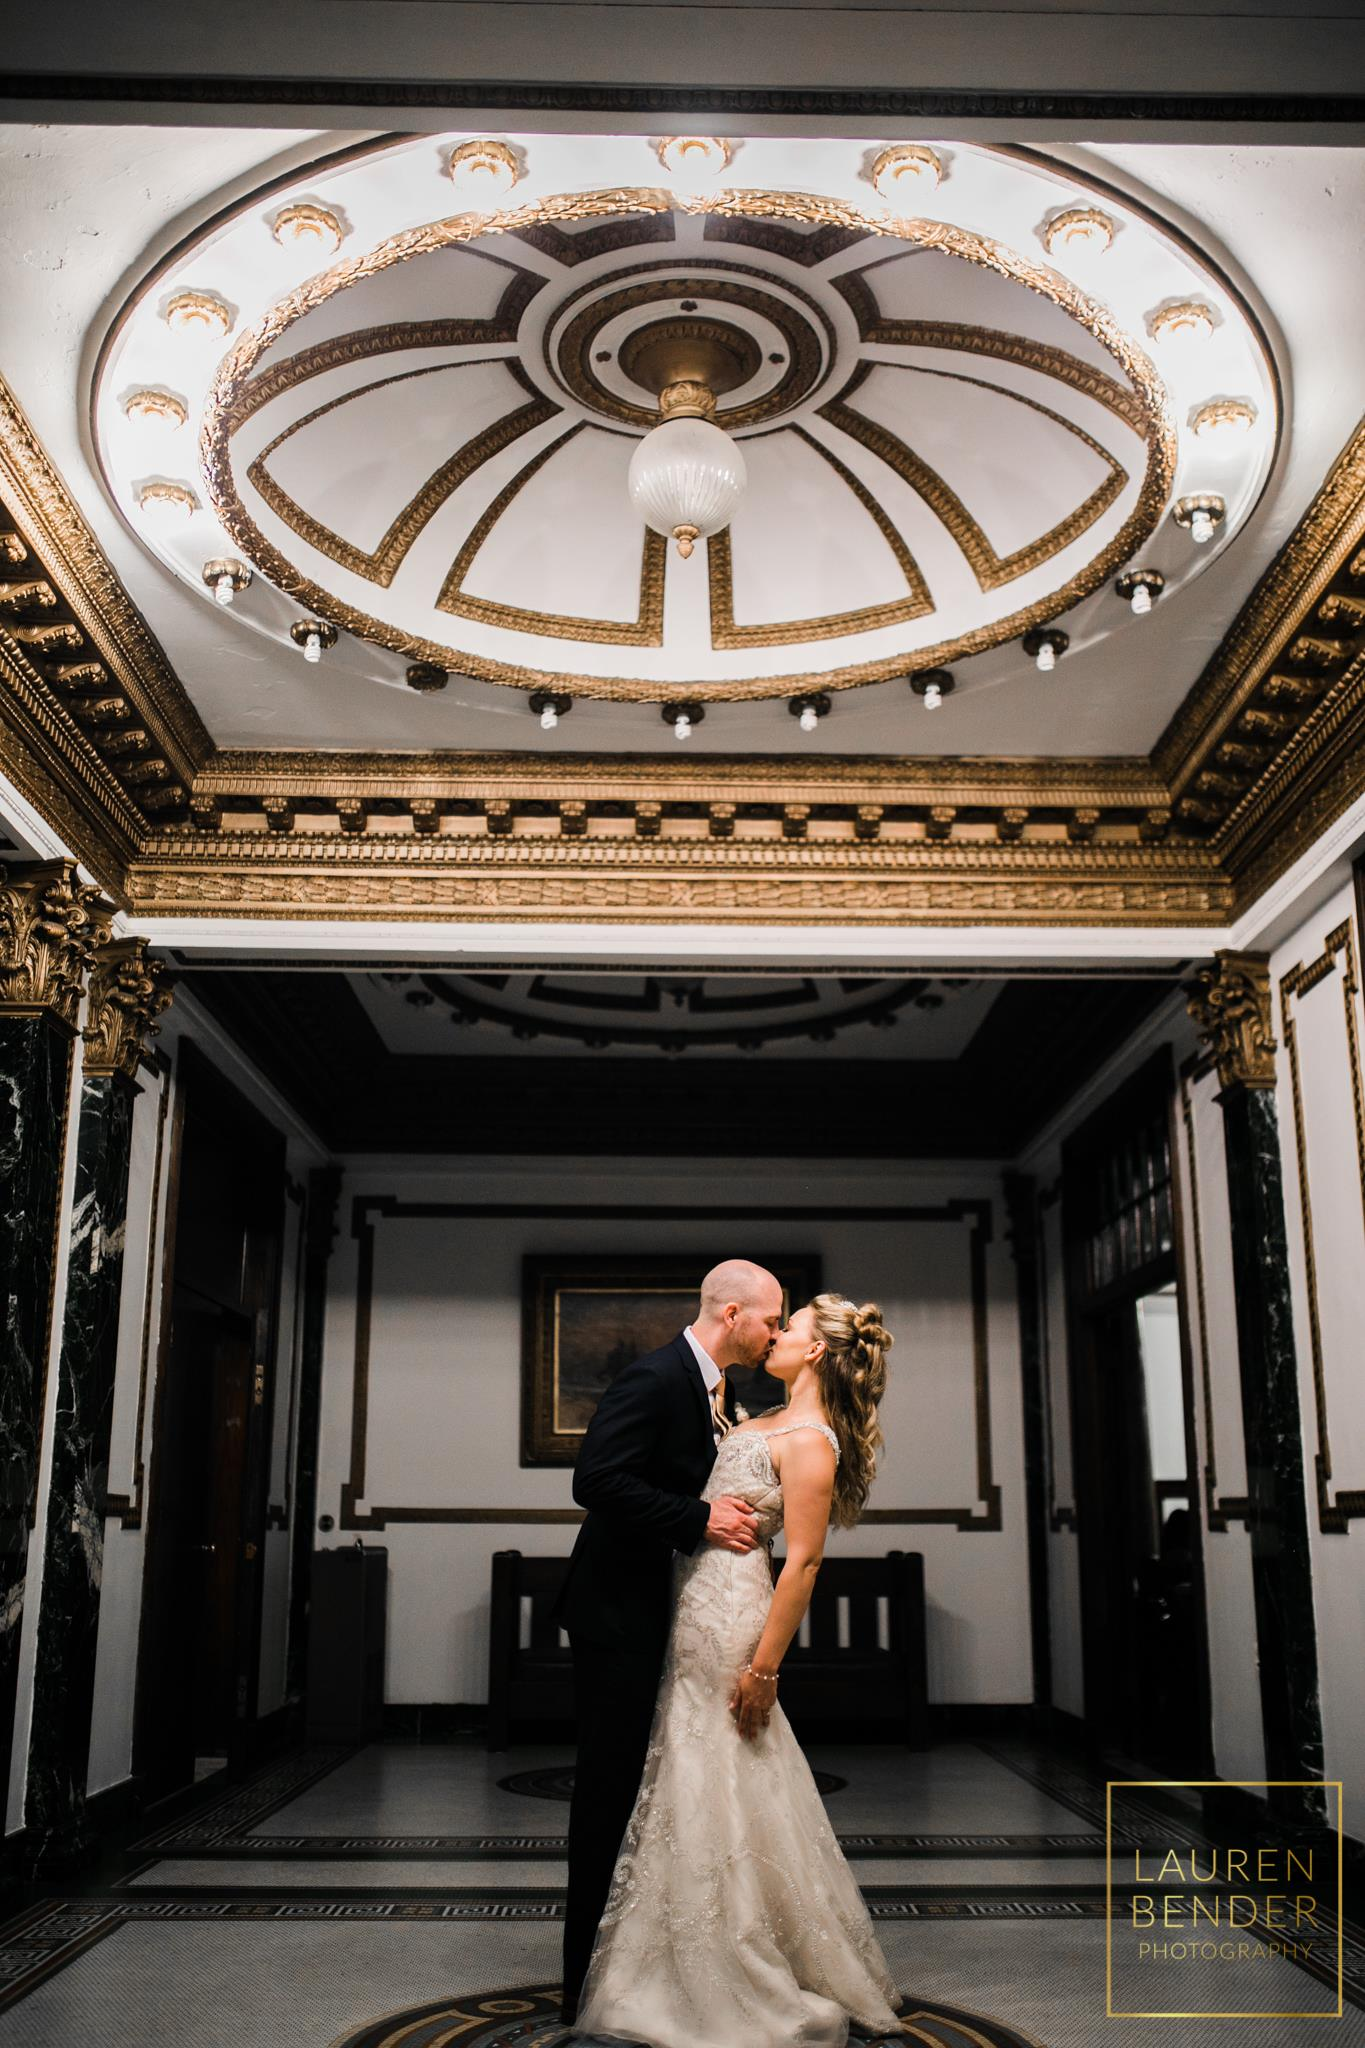 stephanie + joe _lauren bender photography.jpg